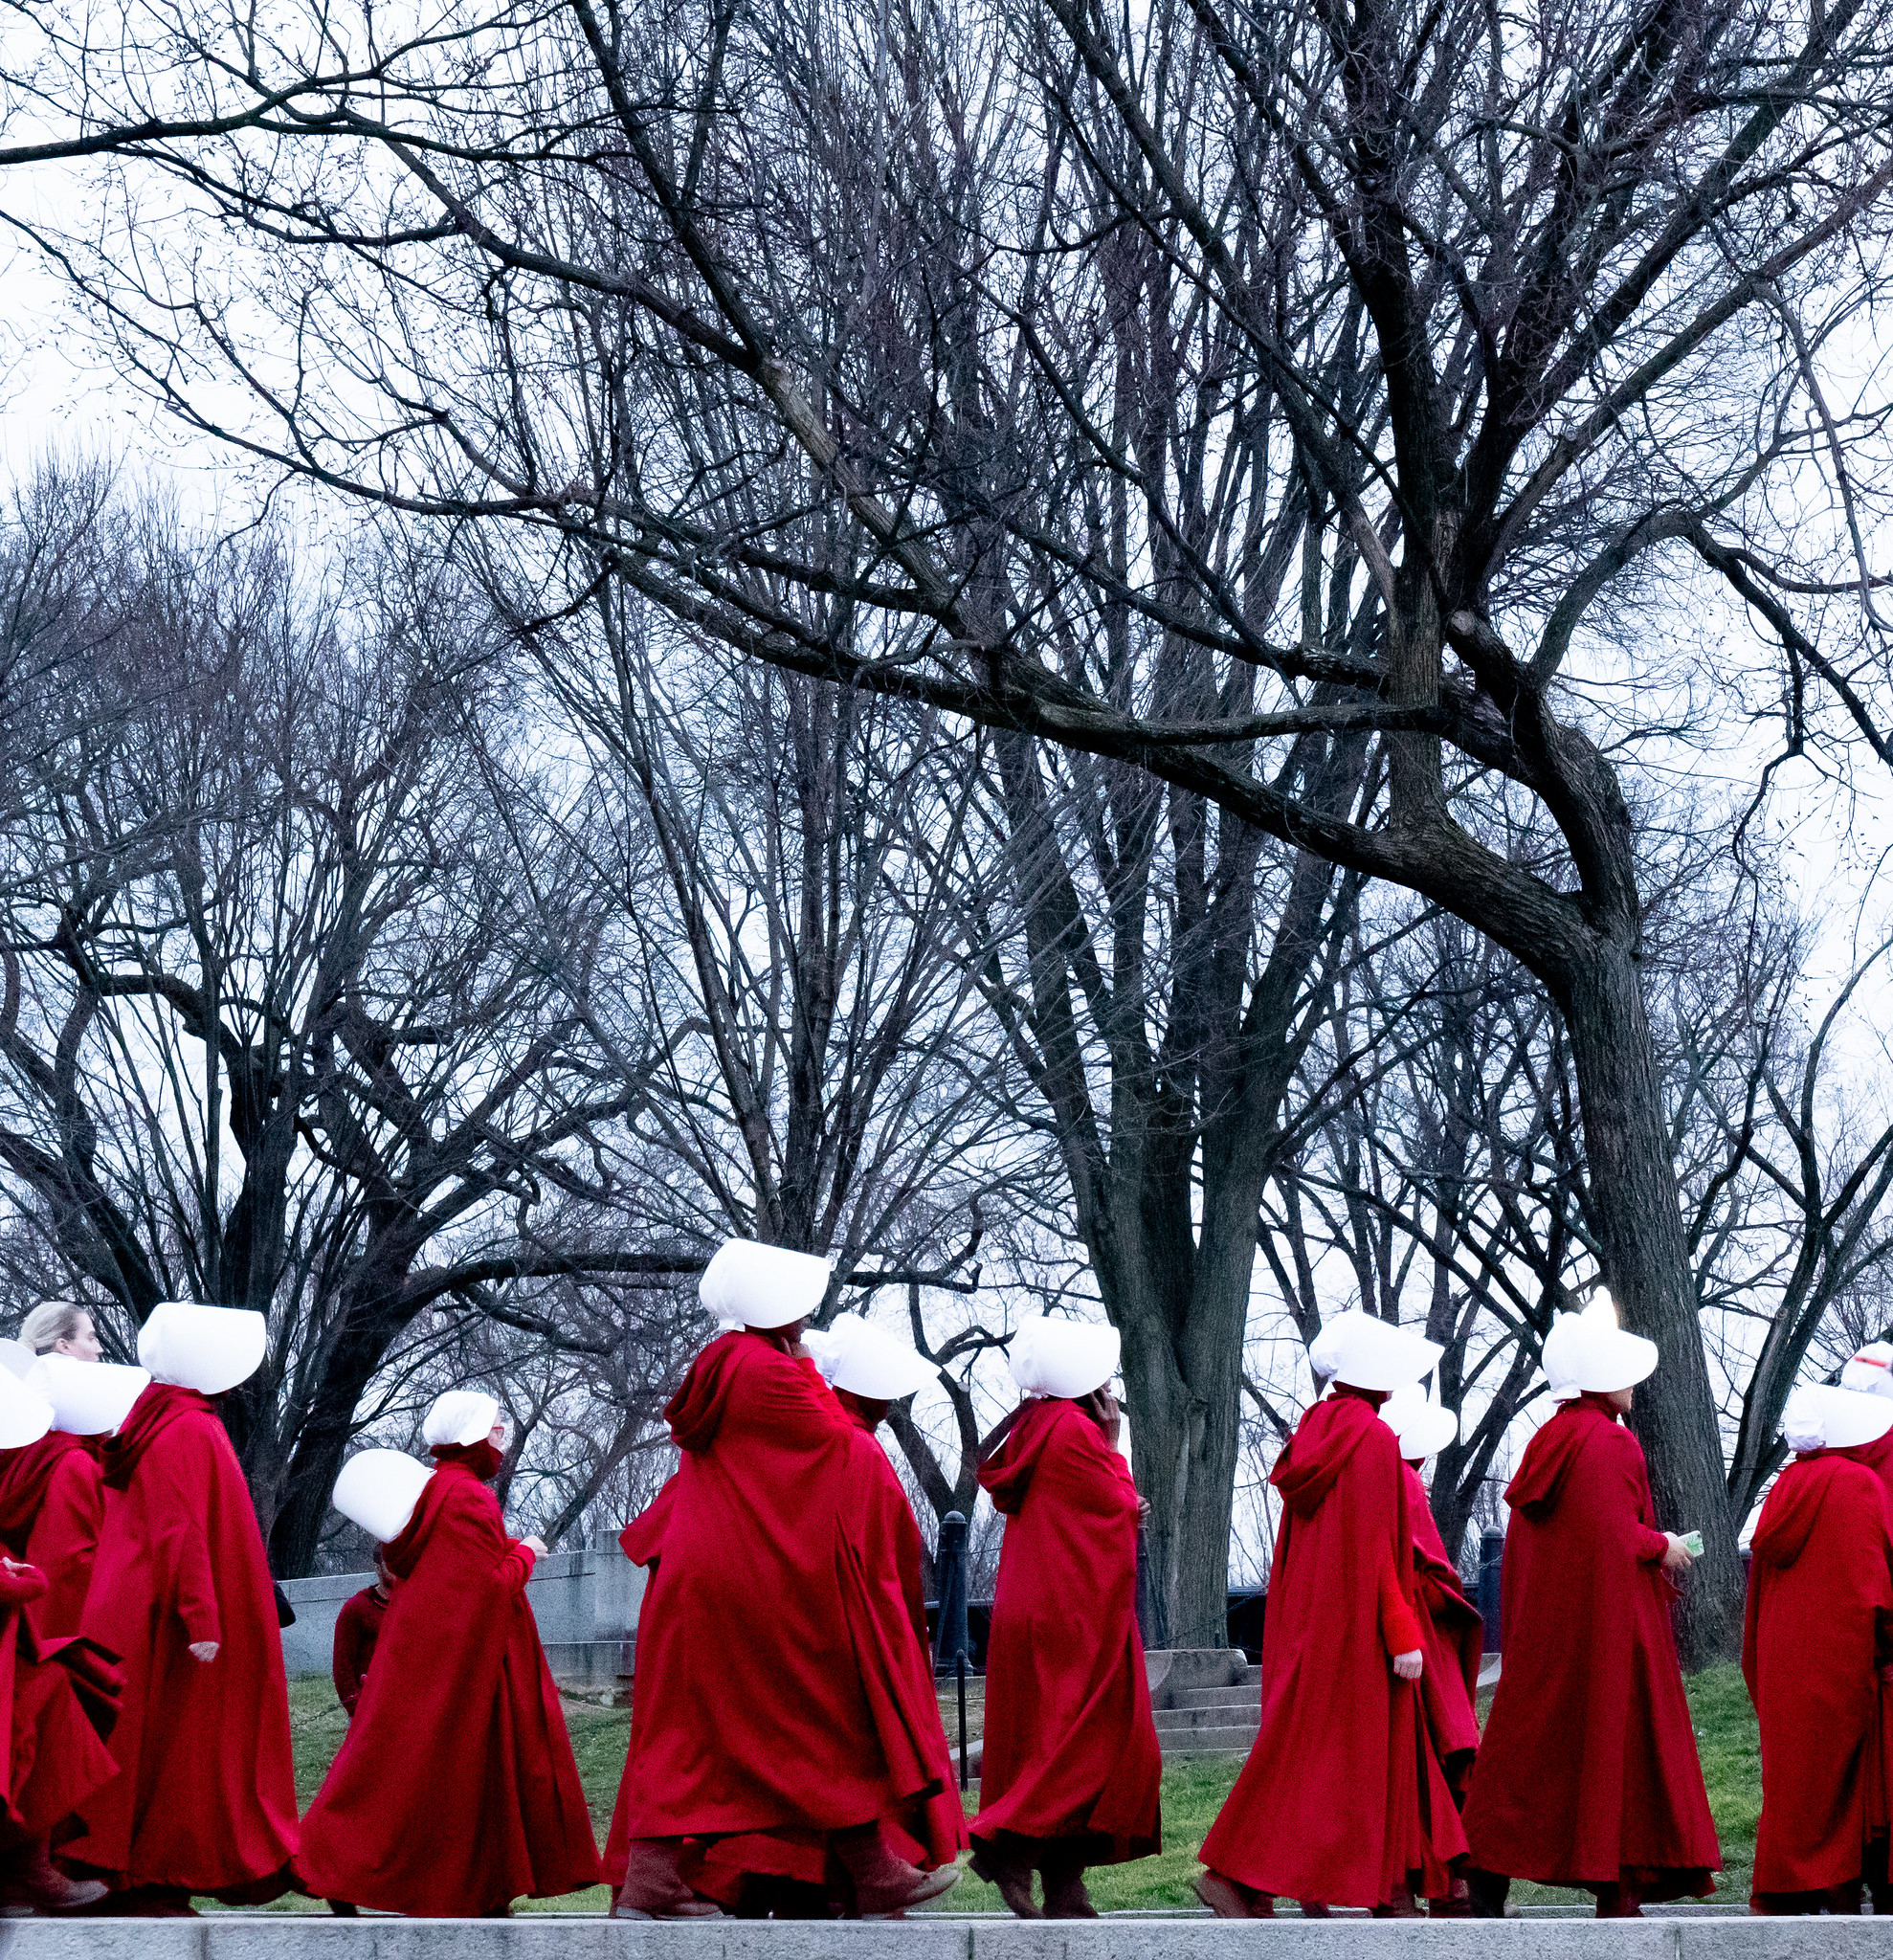 Exalted by readers, TV fans and activists, can 'Handmaid's